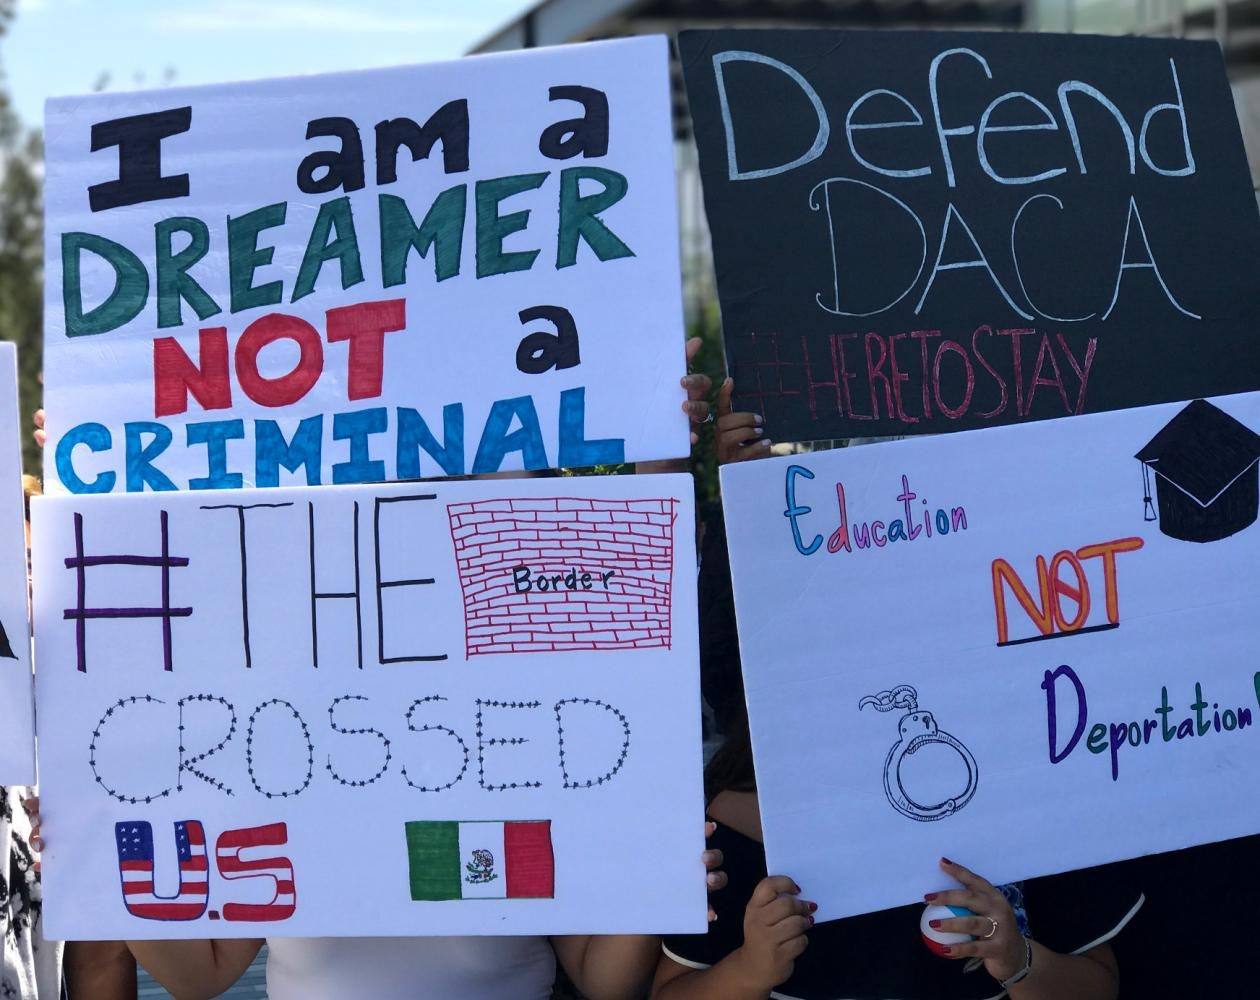 A smaller rally was held outside of the Mesa Commons the morning of the announcement.